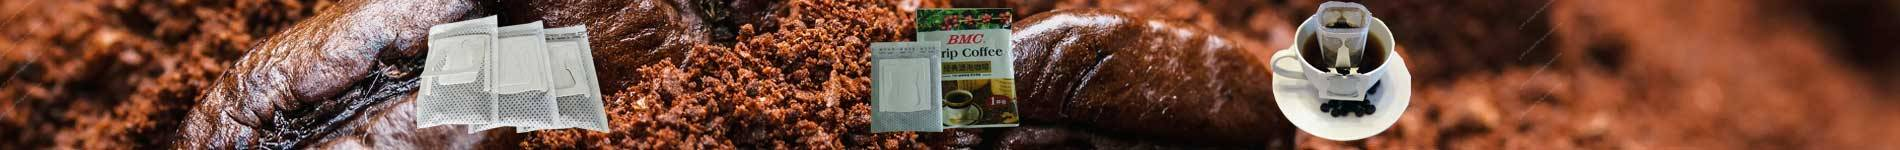 Drip Coffee Packing Machine